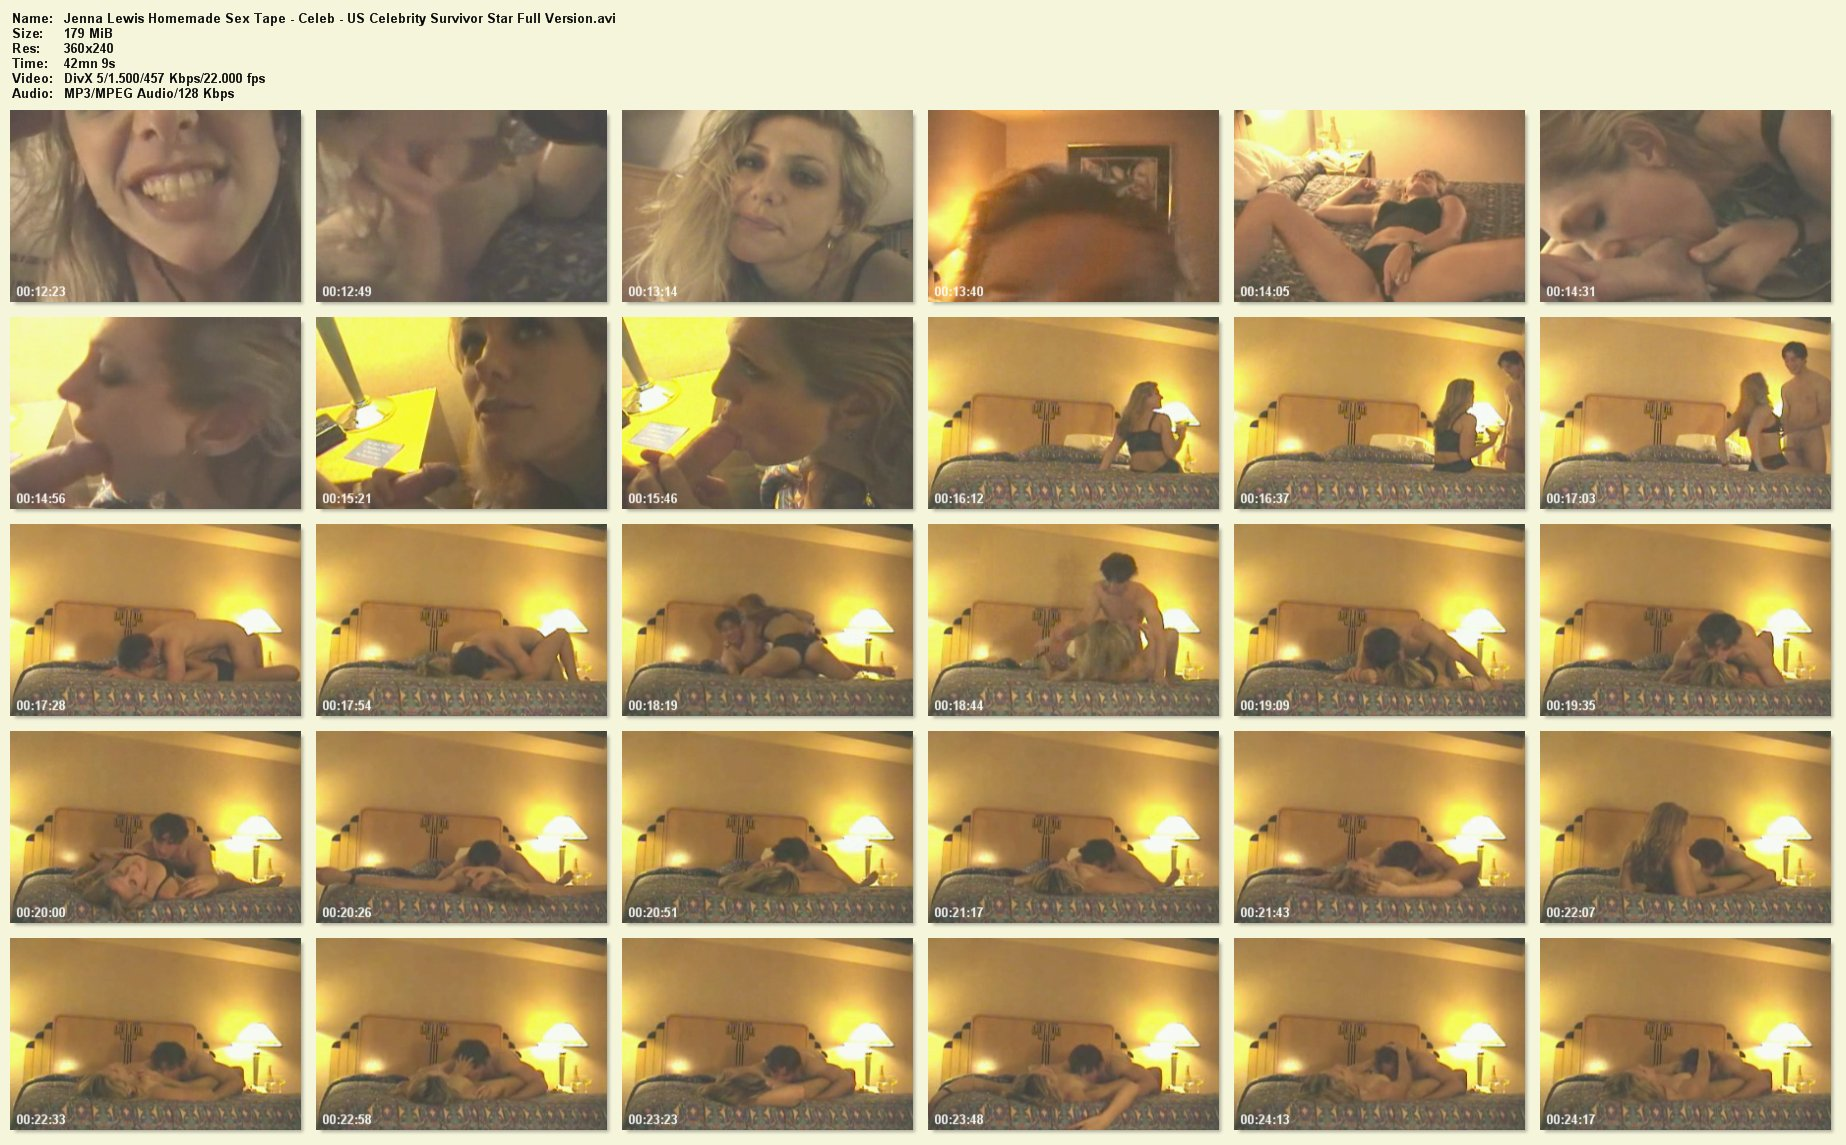 Jenna lewis sex tape review